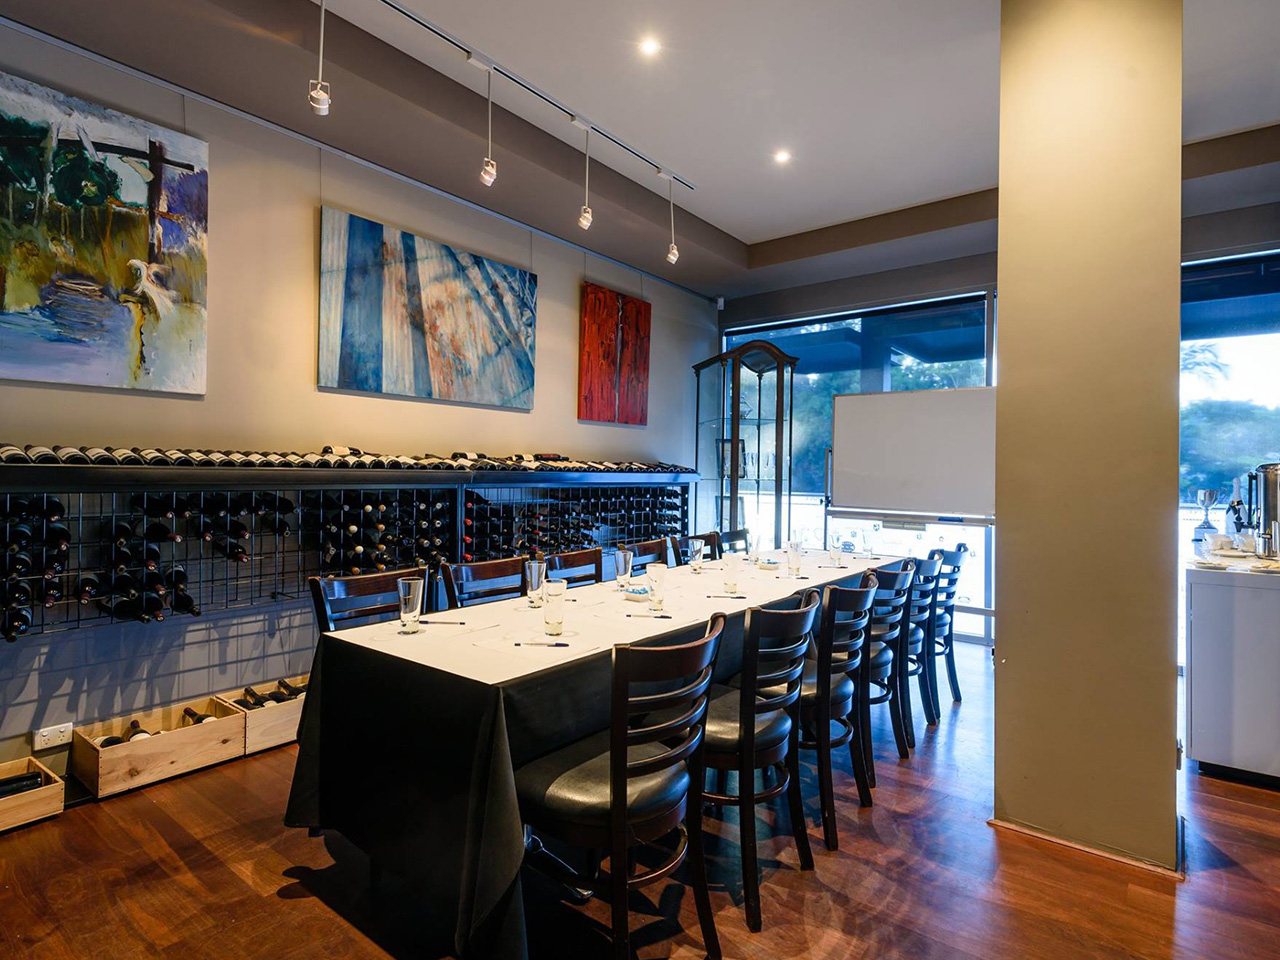 Chairs And A Long Table. With Wall Painting Behind, Wine Bottles And Outside View